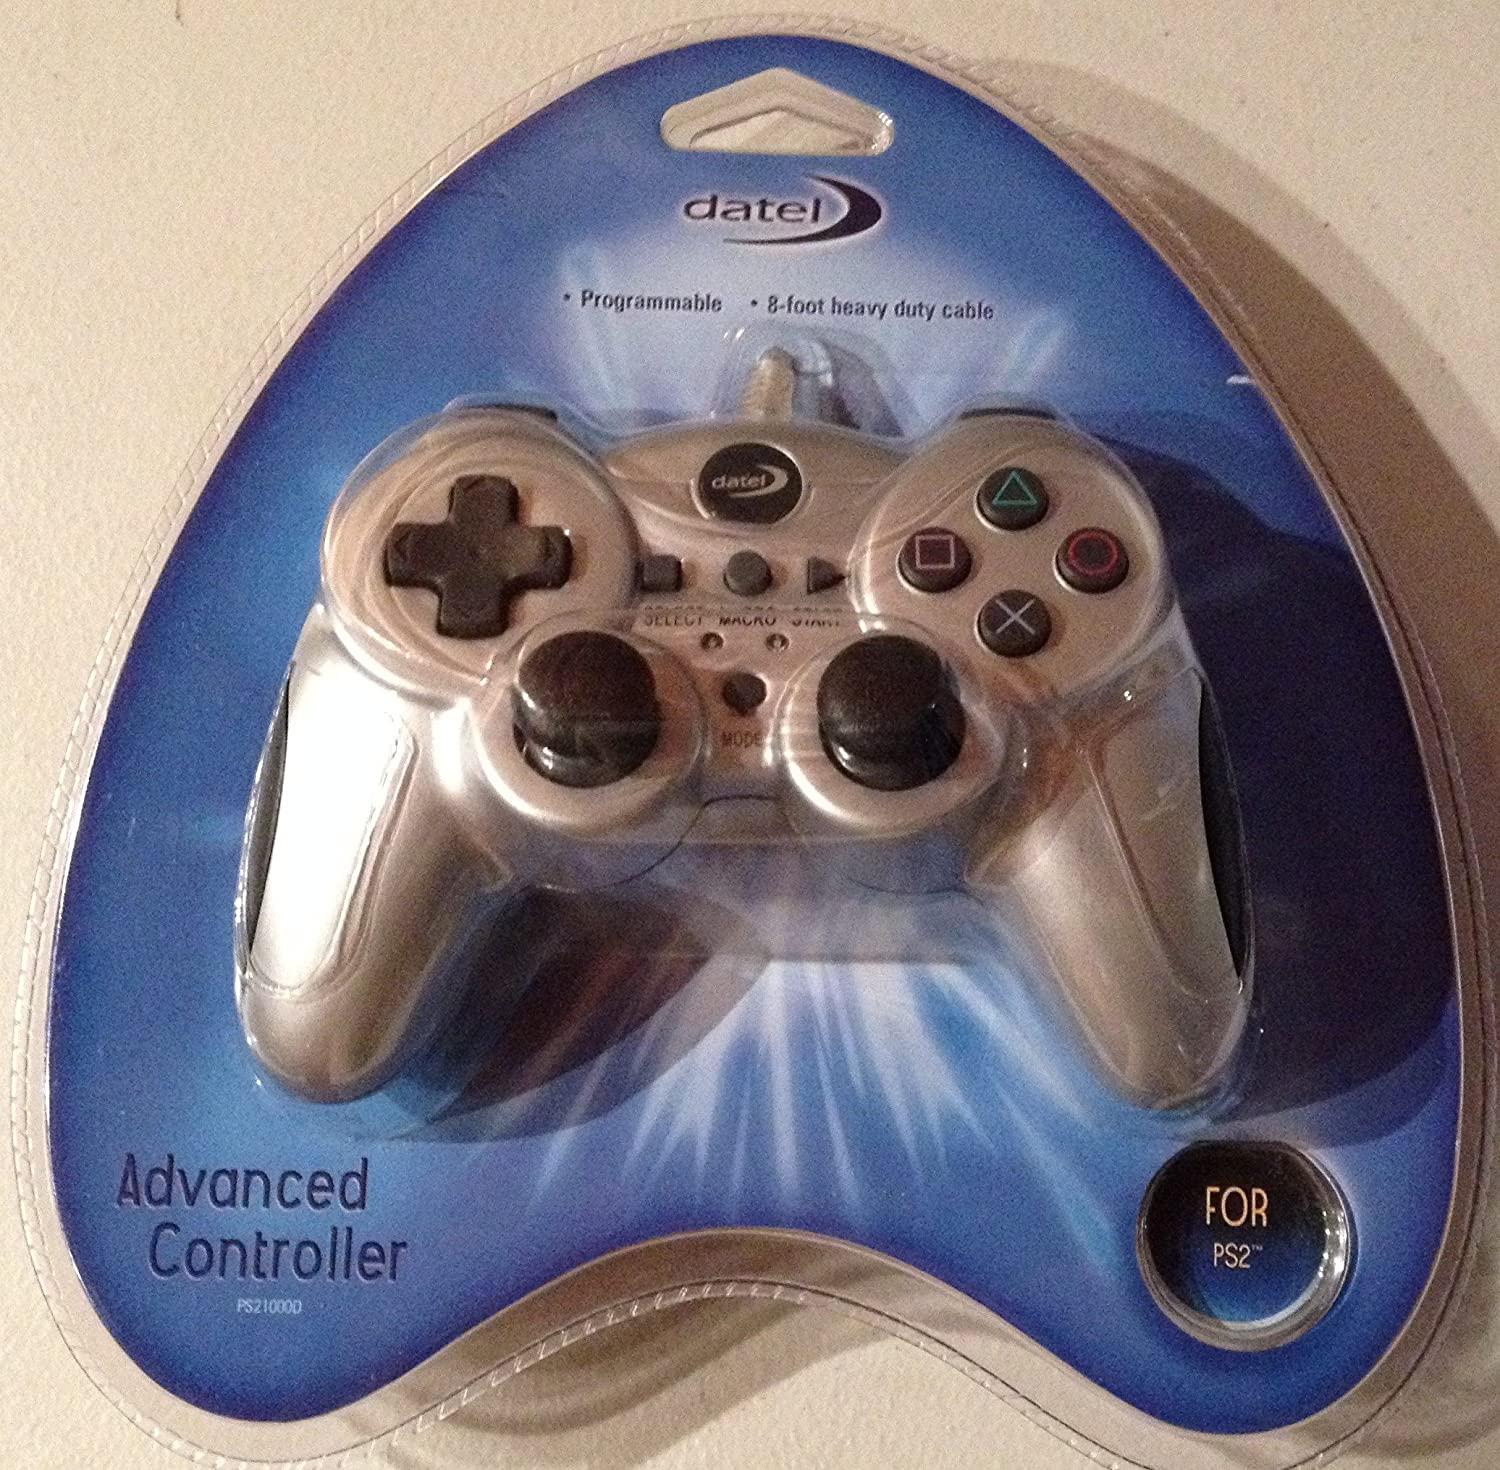 Advanced Controller for PS2 by Datel